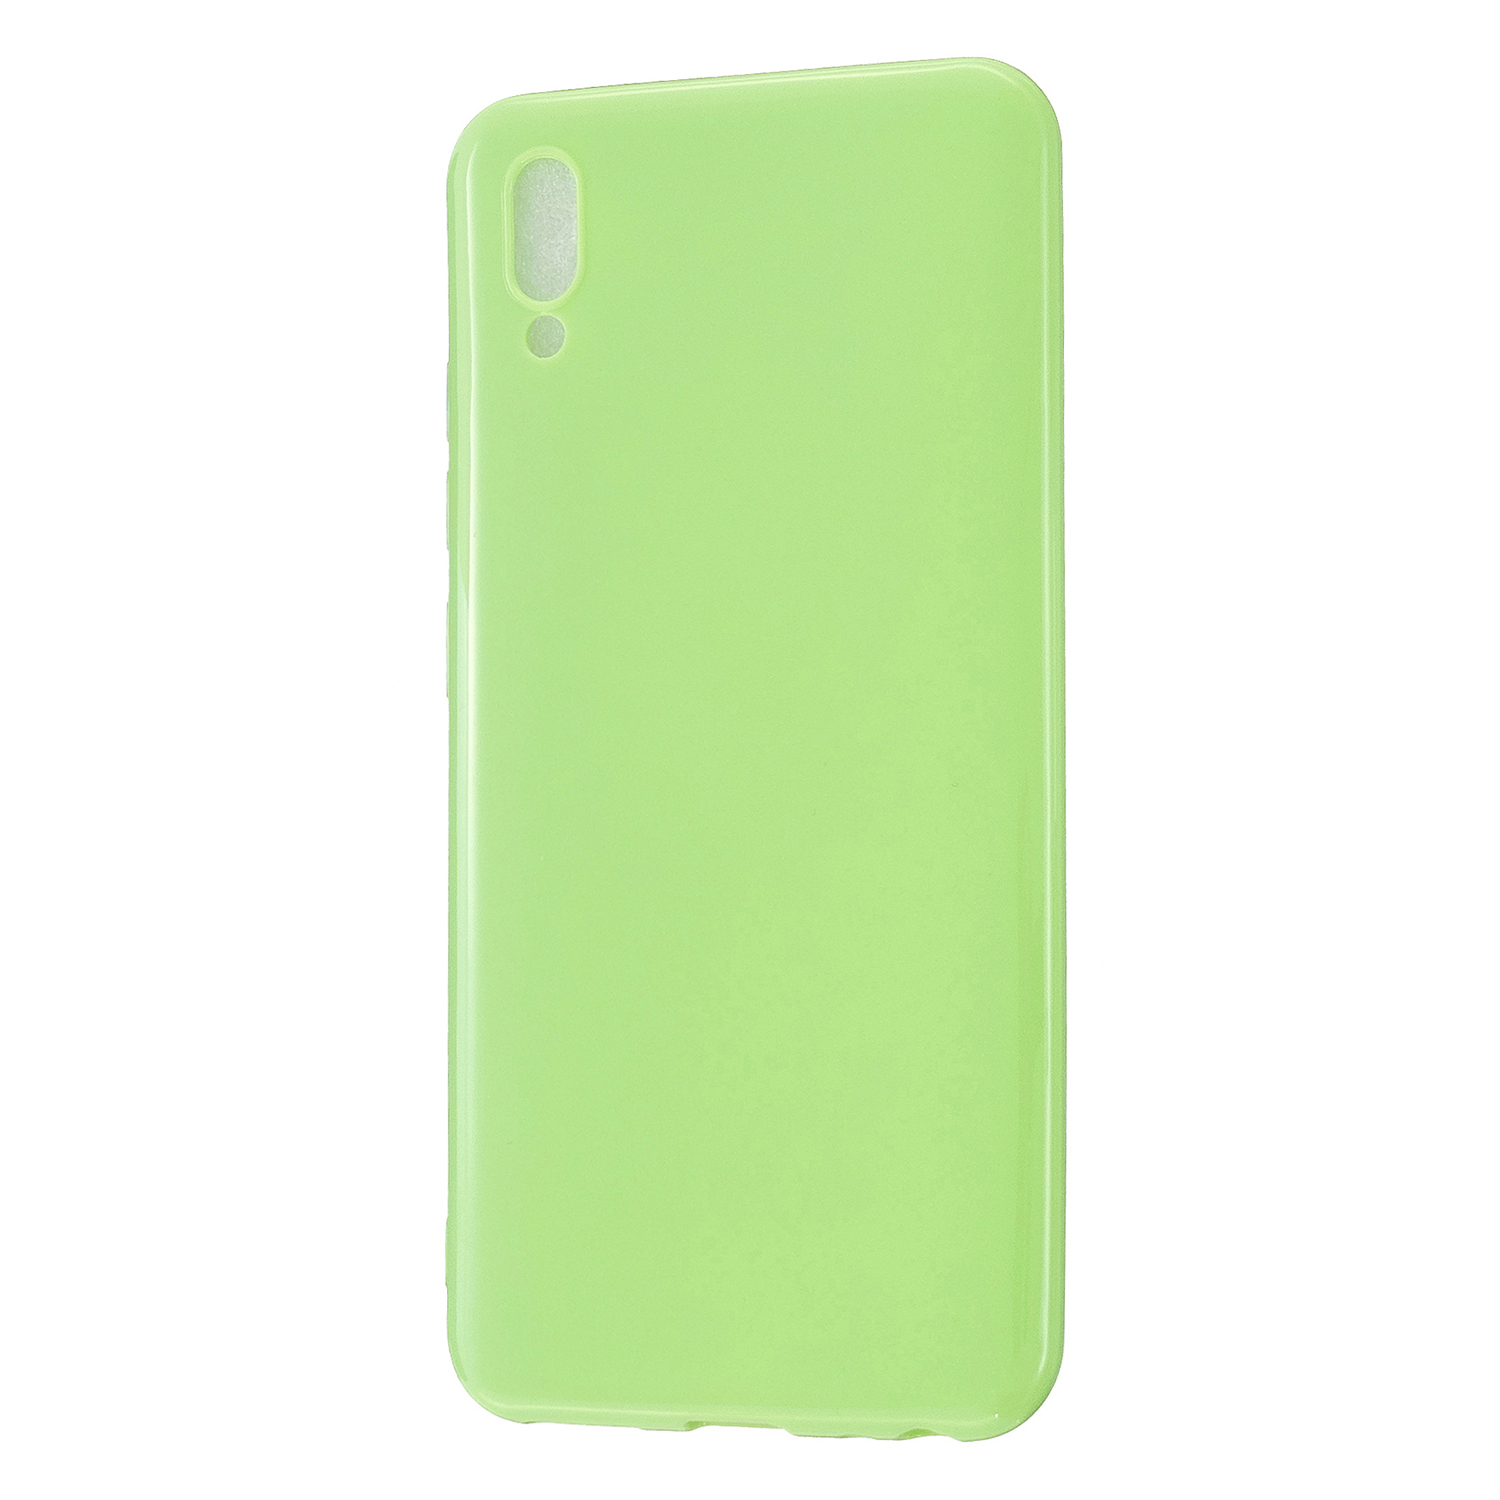 For VIVO IQOO Neo/Y97 Glossy TPU Phone Case Mobile Phone Soft Cover Anti-Slip Full Body Protection Fluorescent green